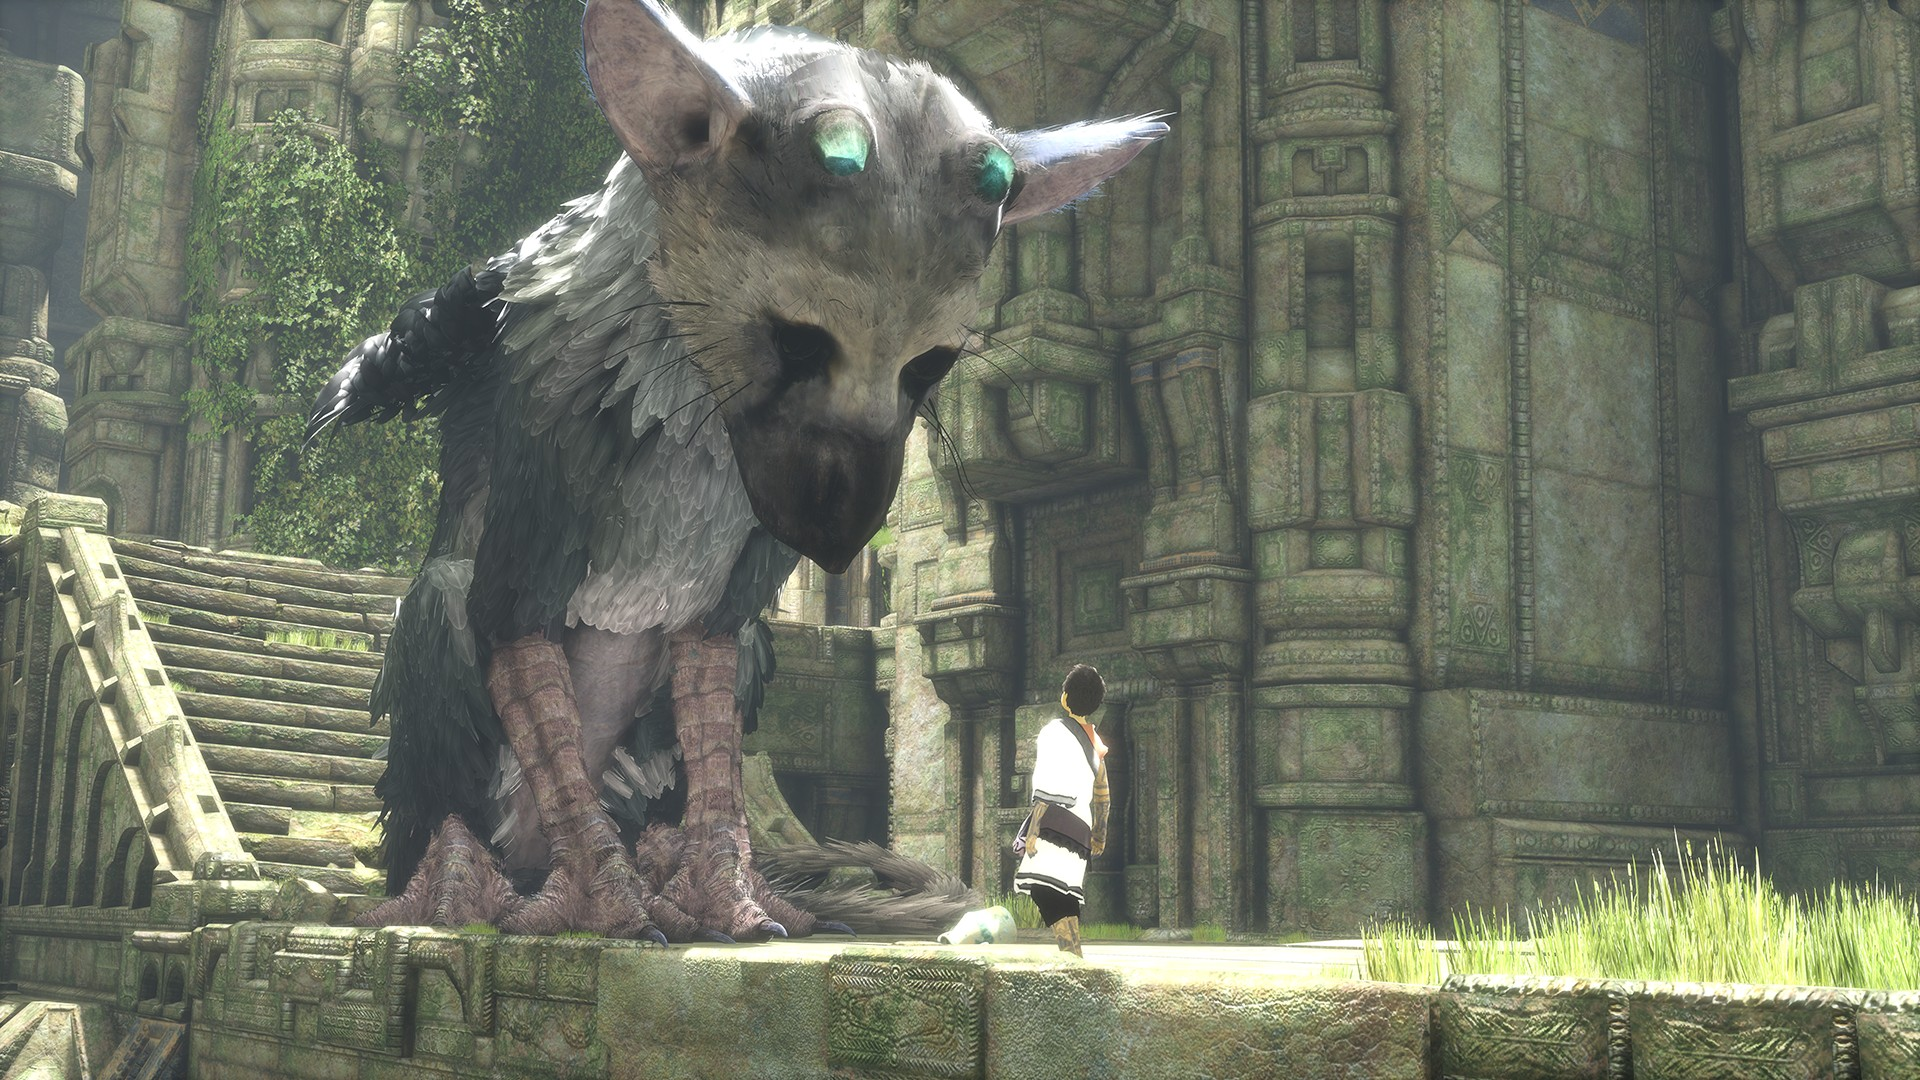 'The Last Guardian' Is a Game About the Only Pure Thing in Life: Dogs